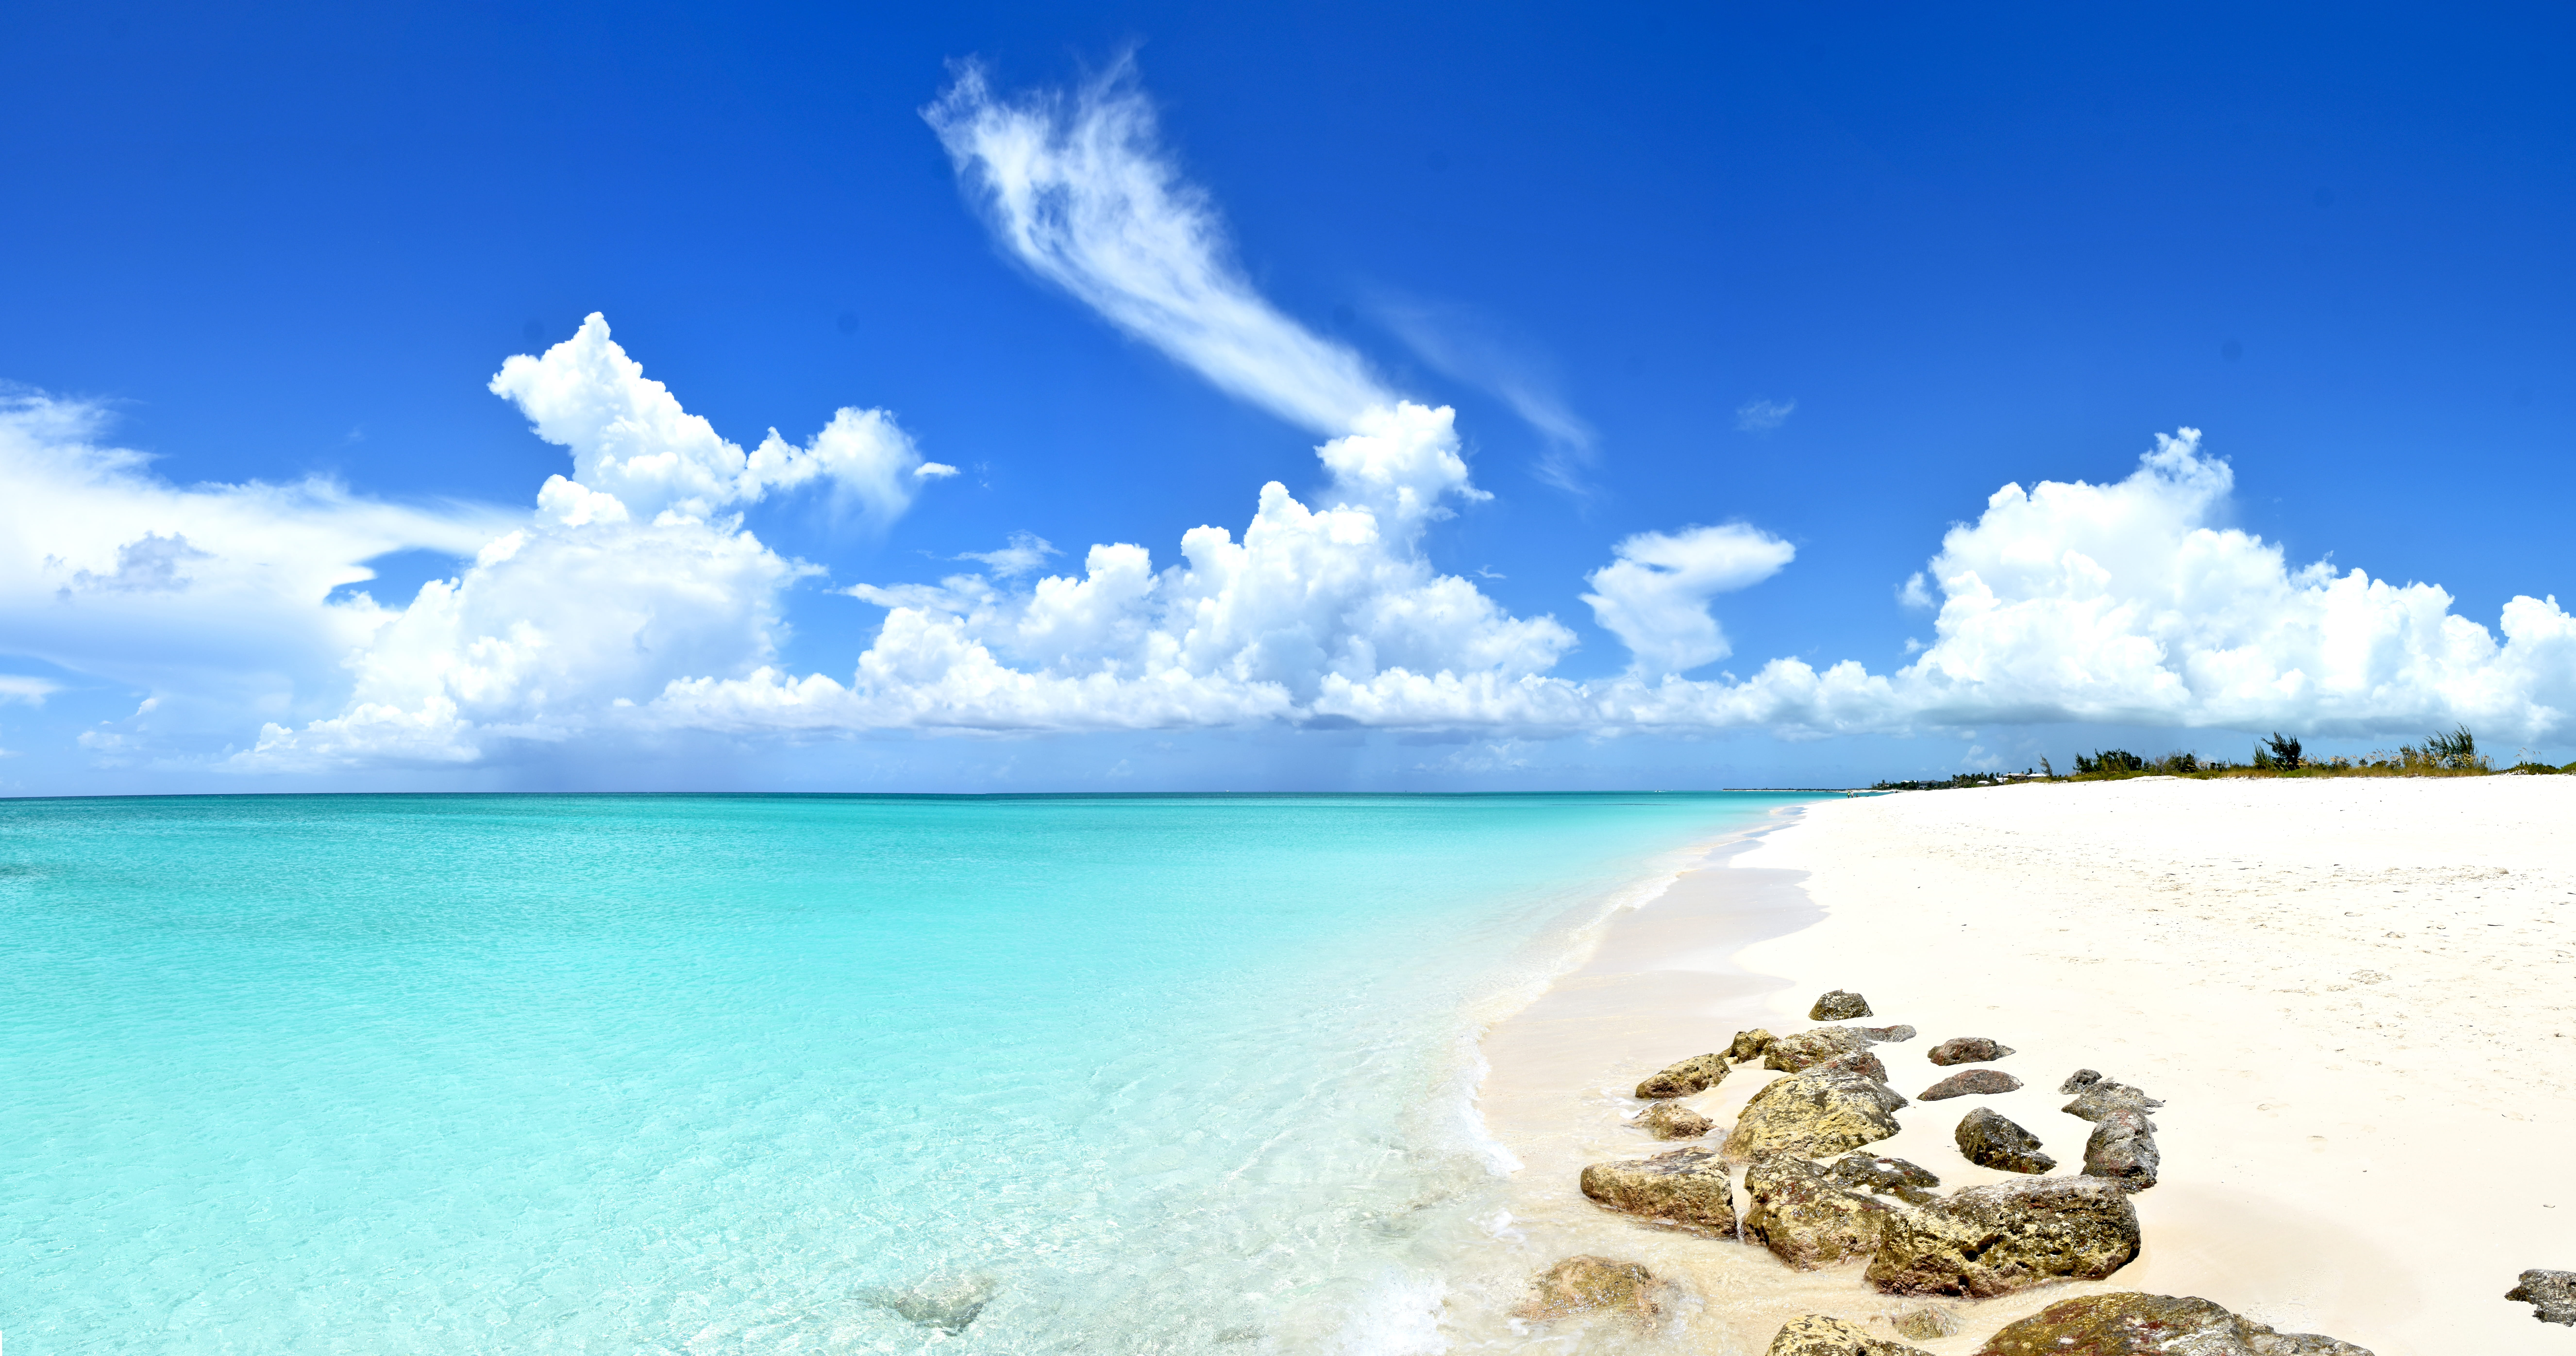 Trips in Turks and Caicos Islands